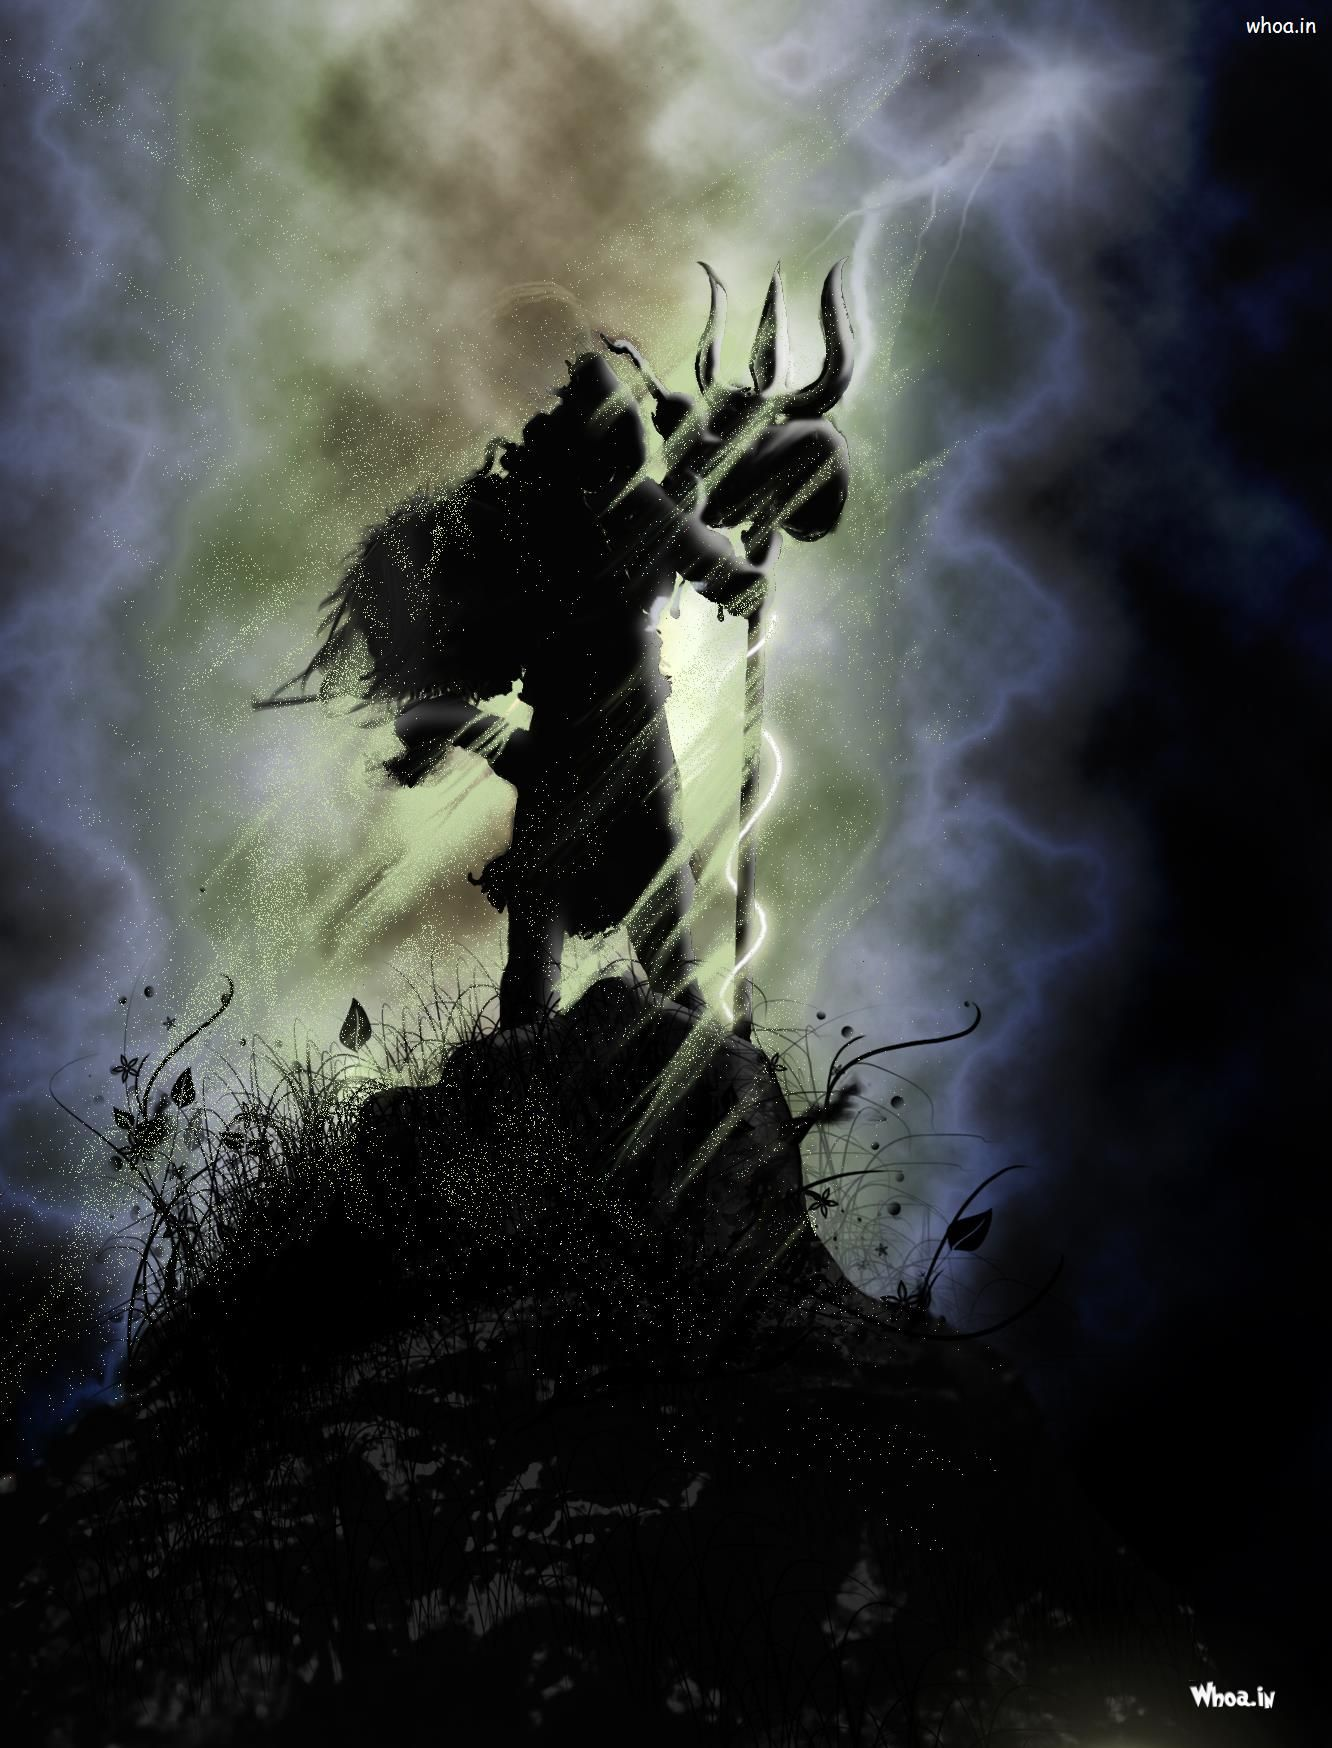 Lord Shiva Angry Wallpapers High Resolution Google Search Angry Lord Shiva Lord Shiva Shiva